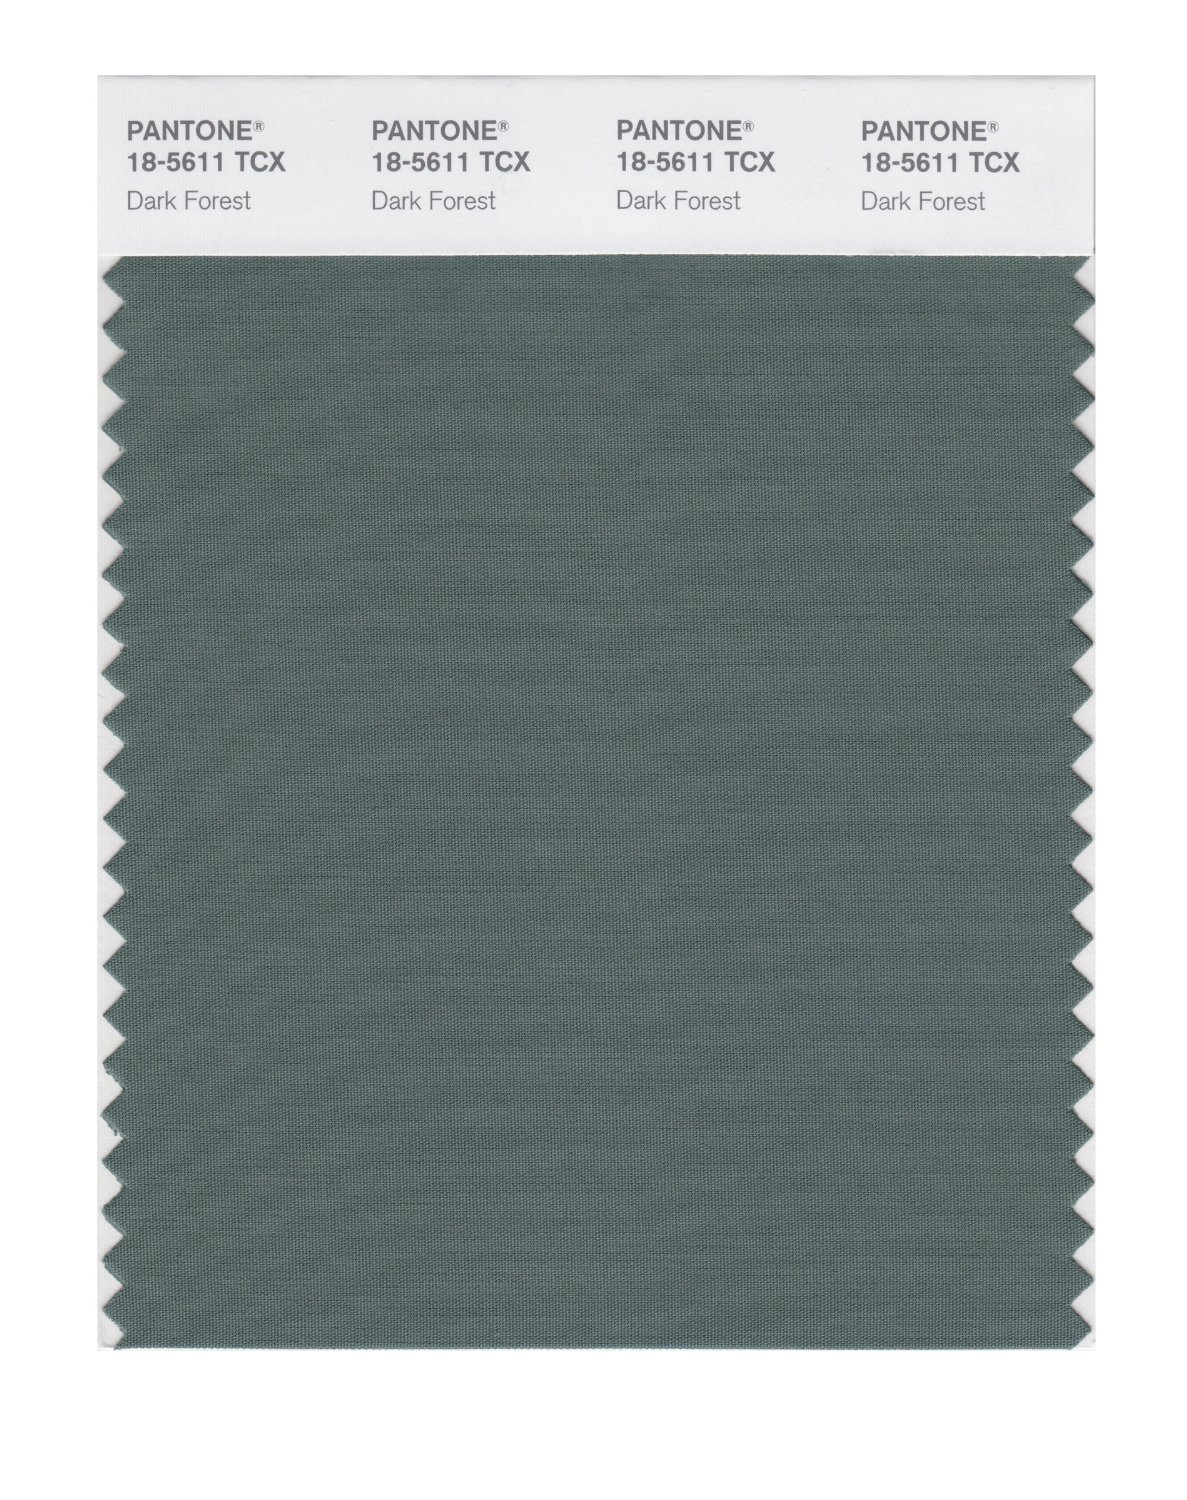 Pantone Smart Swatch 18-5611 Dark Forest